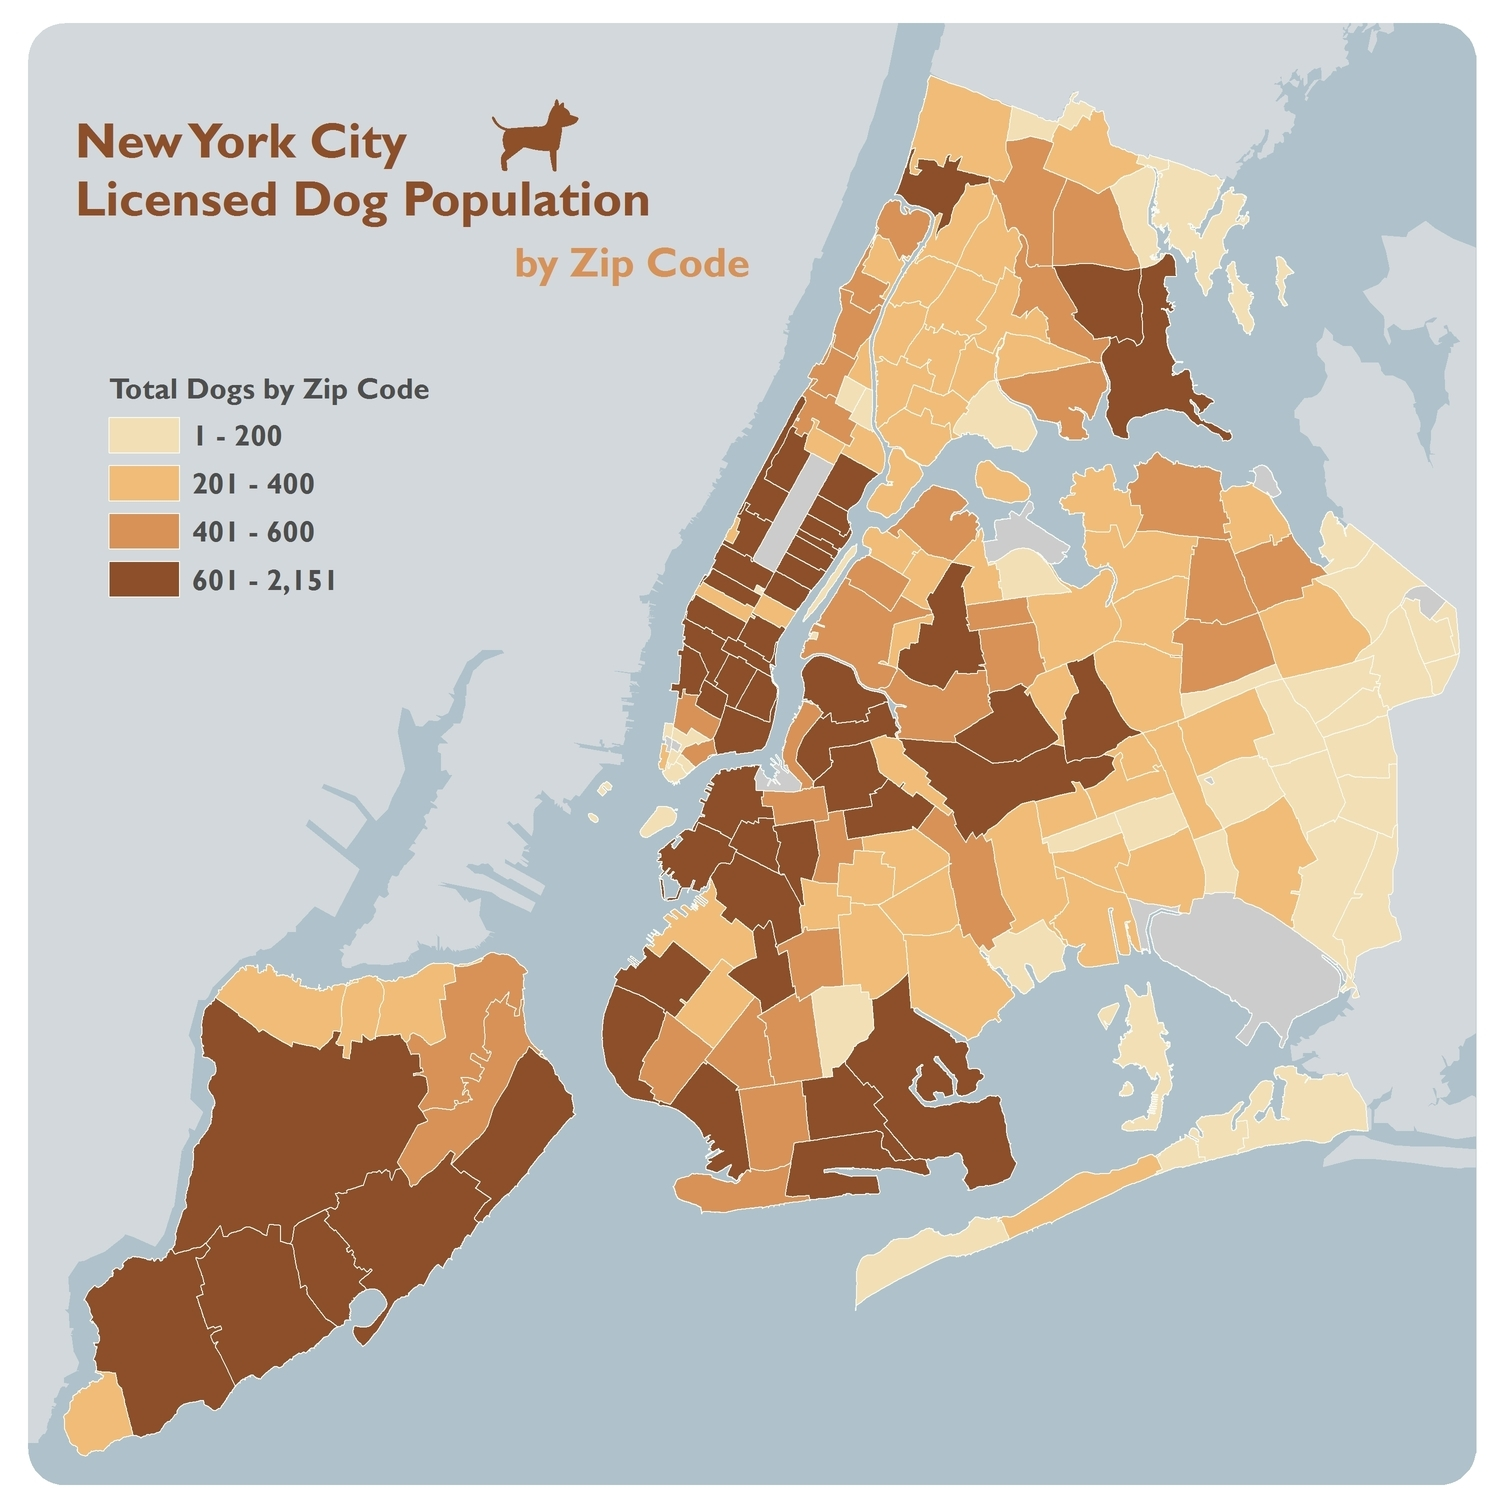 New York City Licensed Dog Population by Zip Code